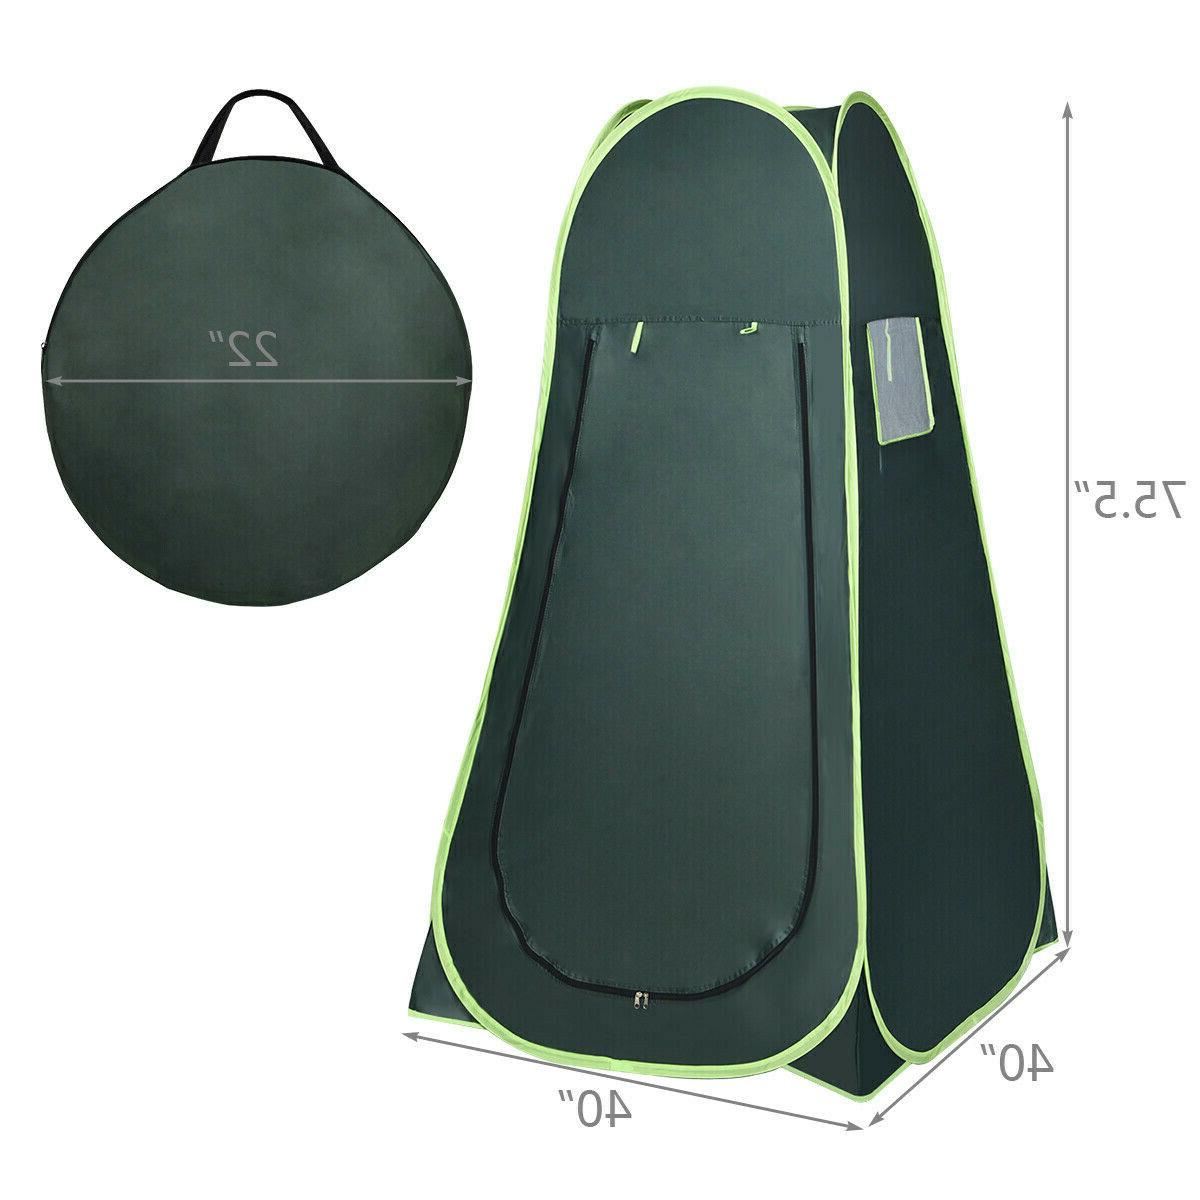 Portable Green Up Tent Camping Privacy Toilet Changing